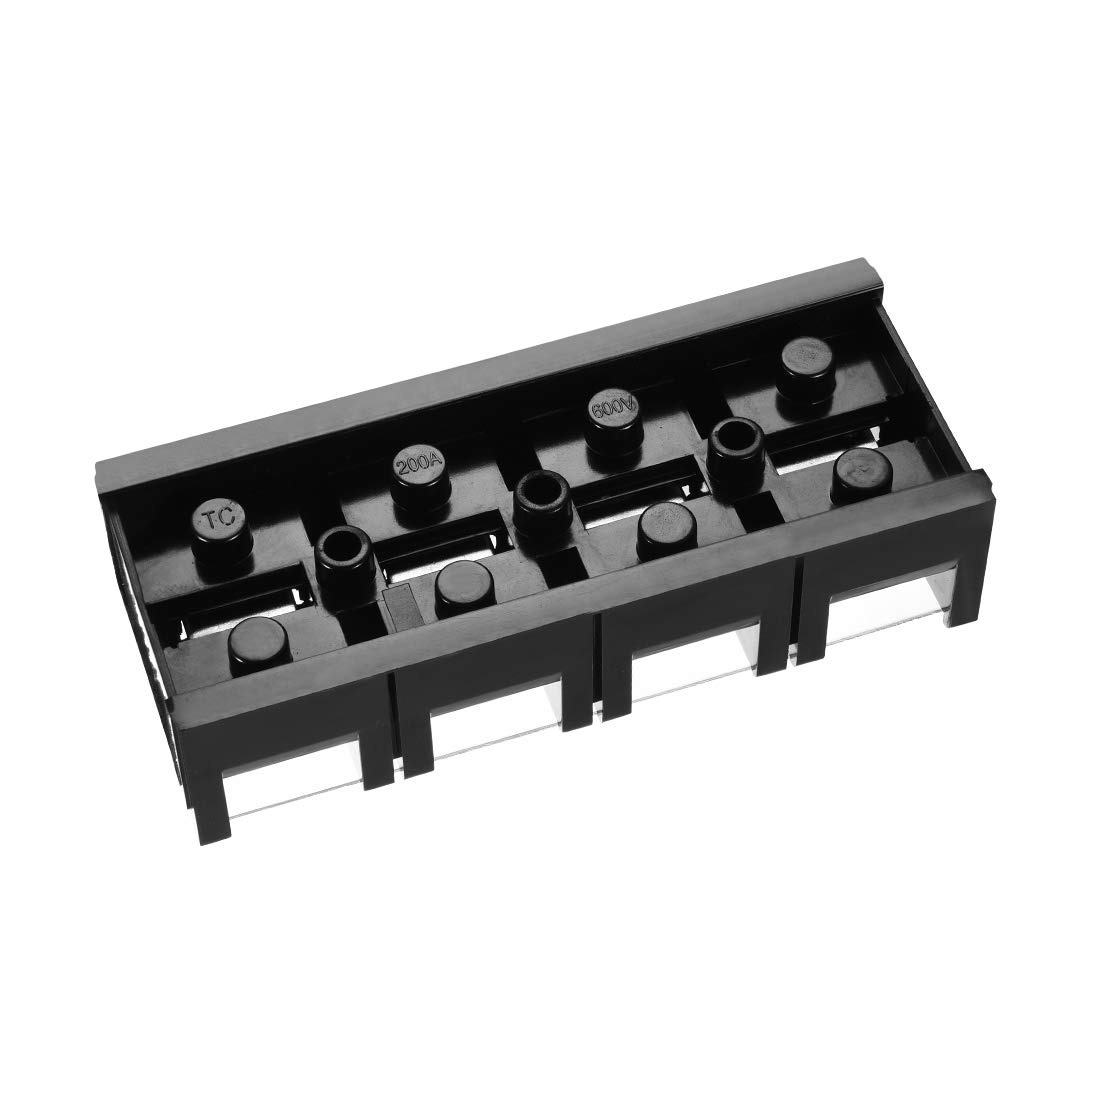 uxcell 2pcs 600V 25A 6 Position Double Row Covered Screw Terminal Barrier Blocks Connector TB2506 a16080100ux0076